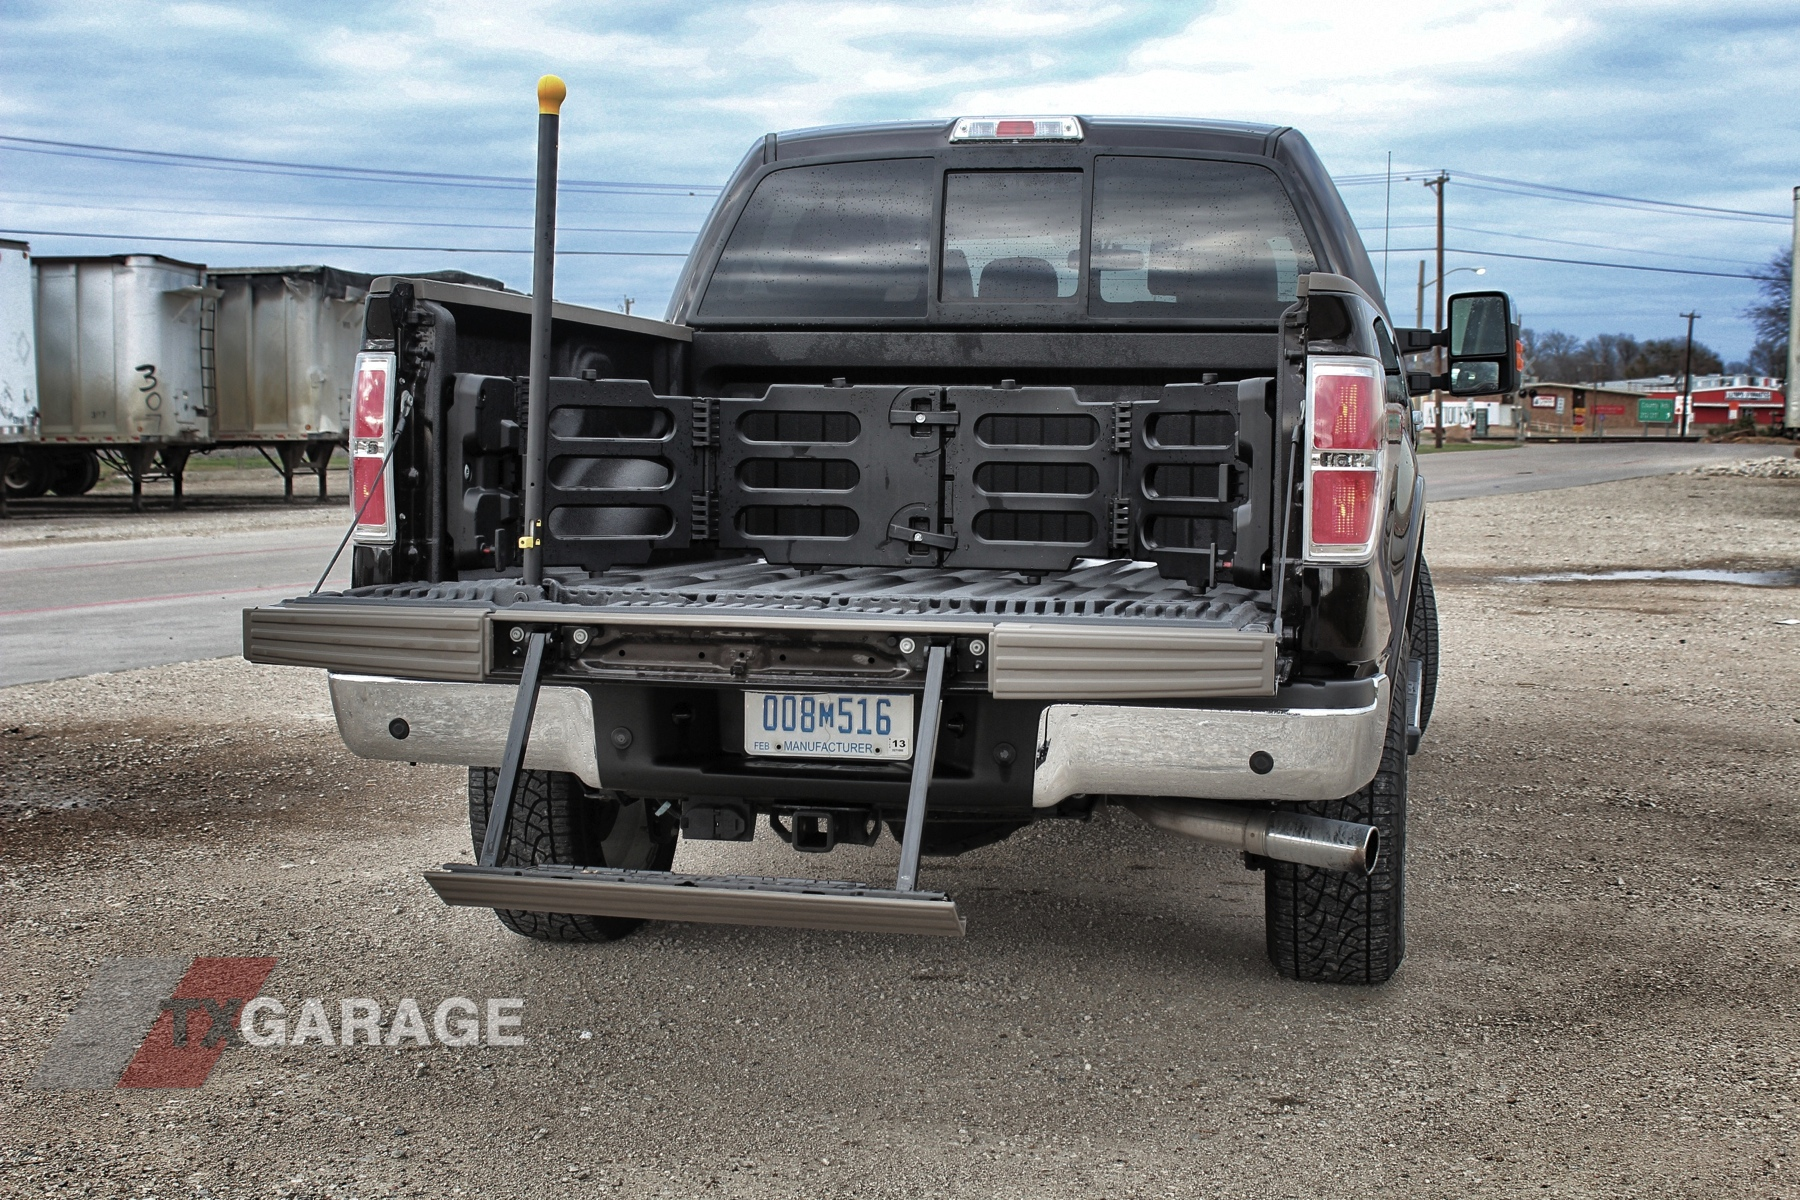 2013 f 150 king ranch interior previous next - 2015 Ford F 150 King Ranch Tailgate